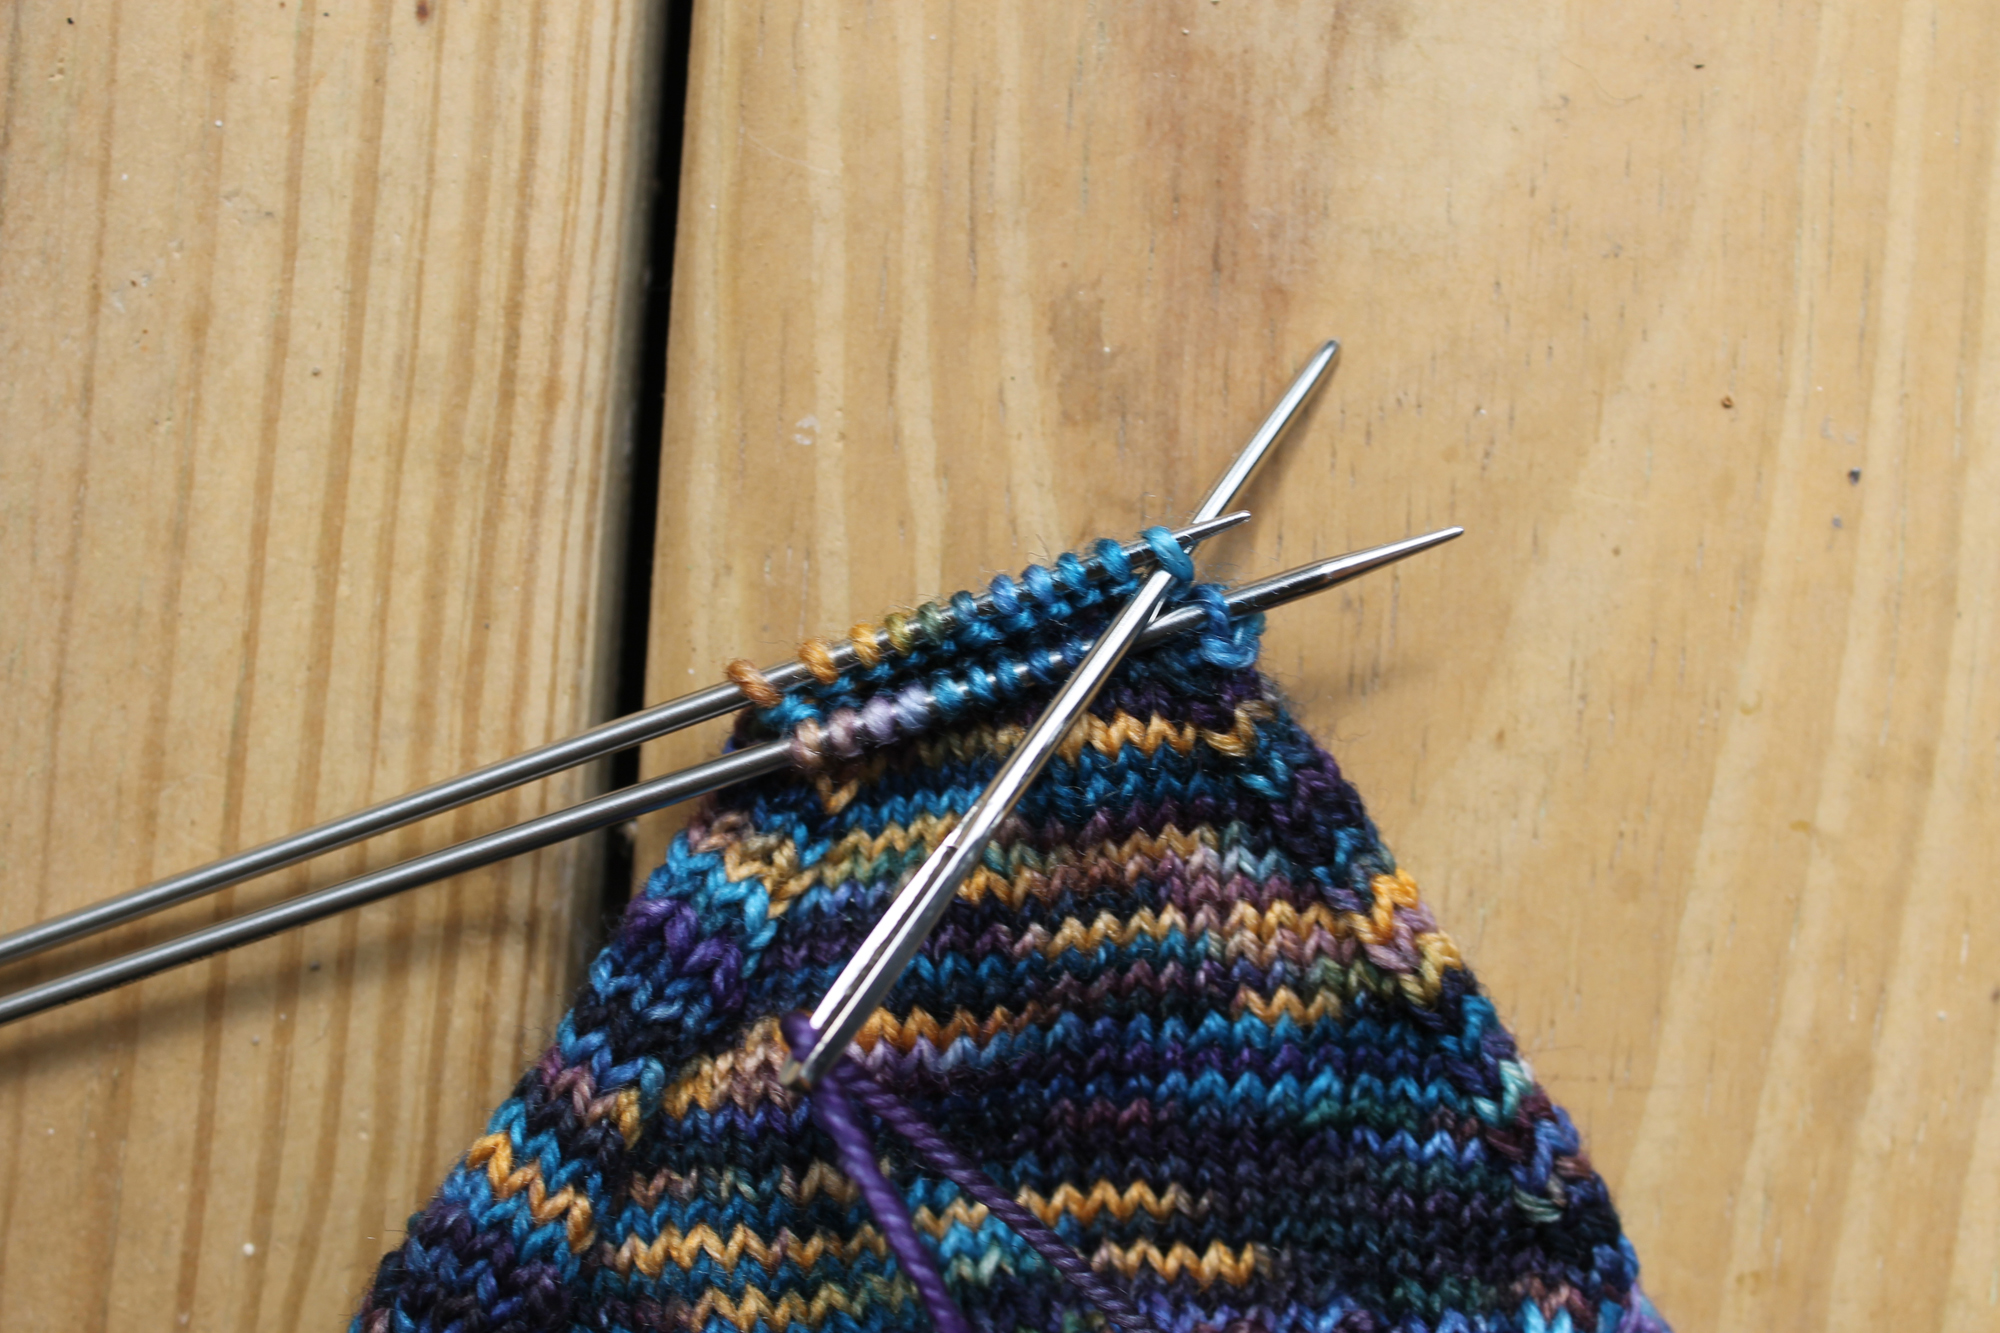 Inserting the needle knitwise on the back needle